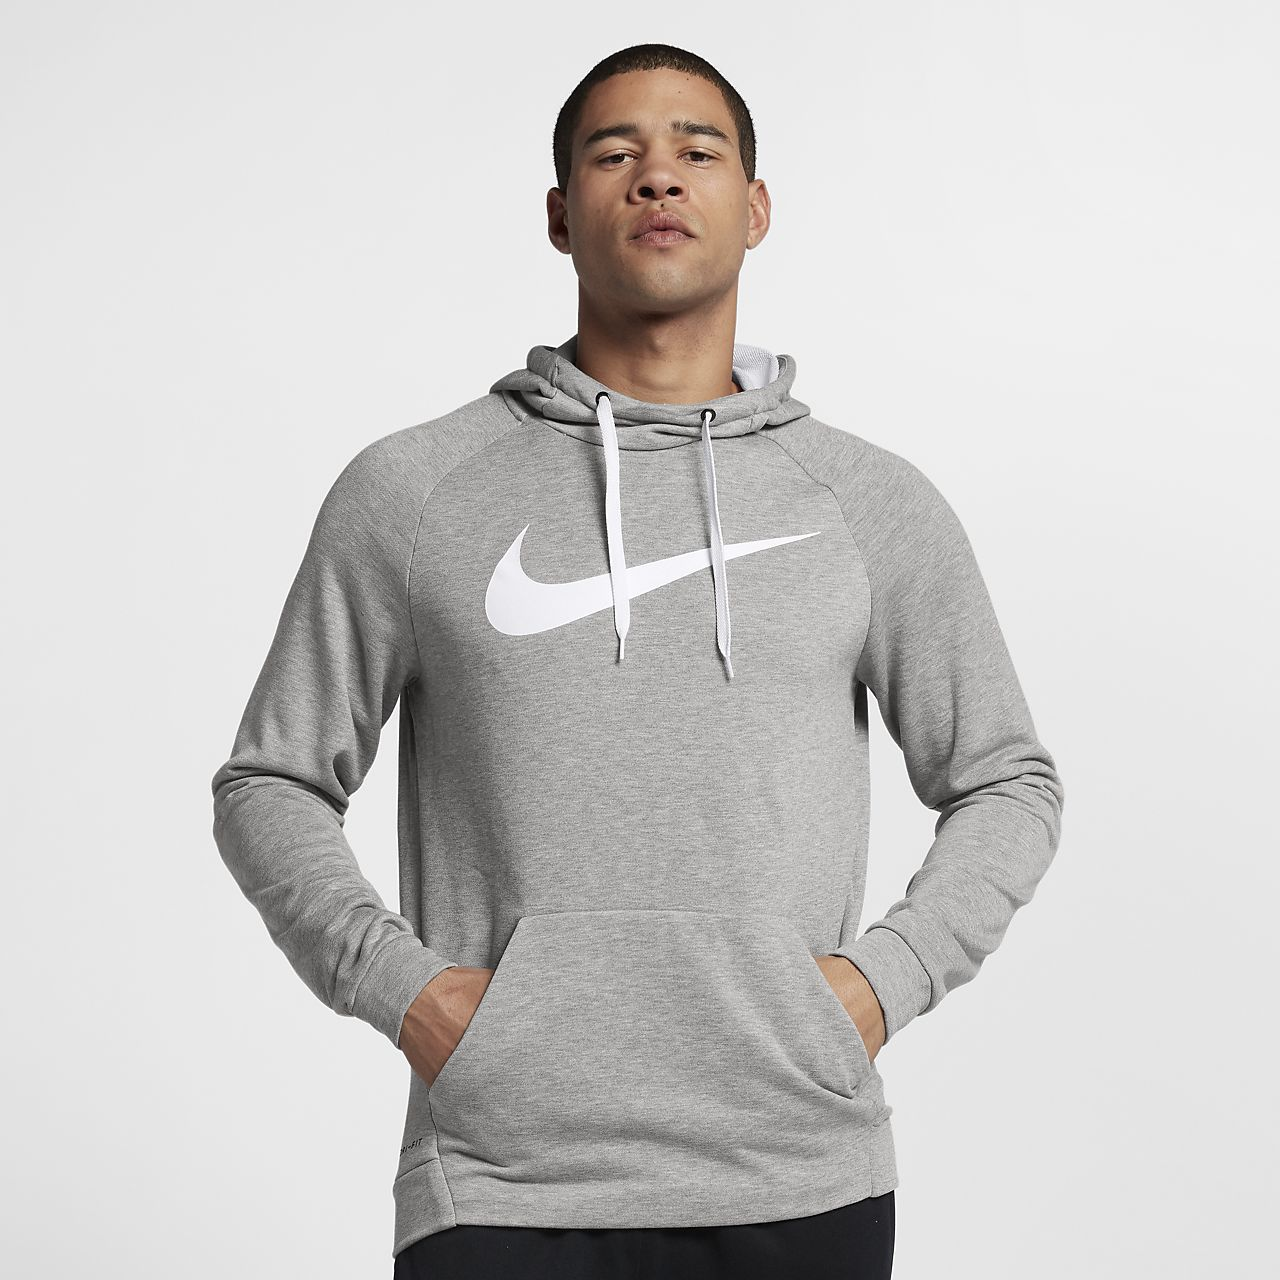 118263a7a4 Nike Dri-FIT Men's Training Hoodie